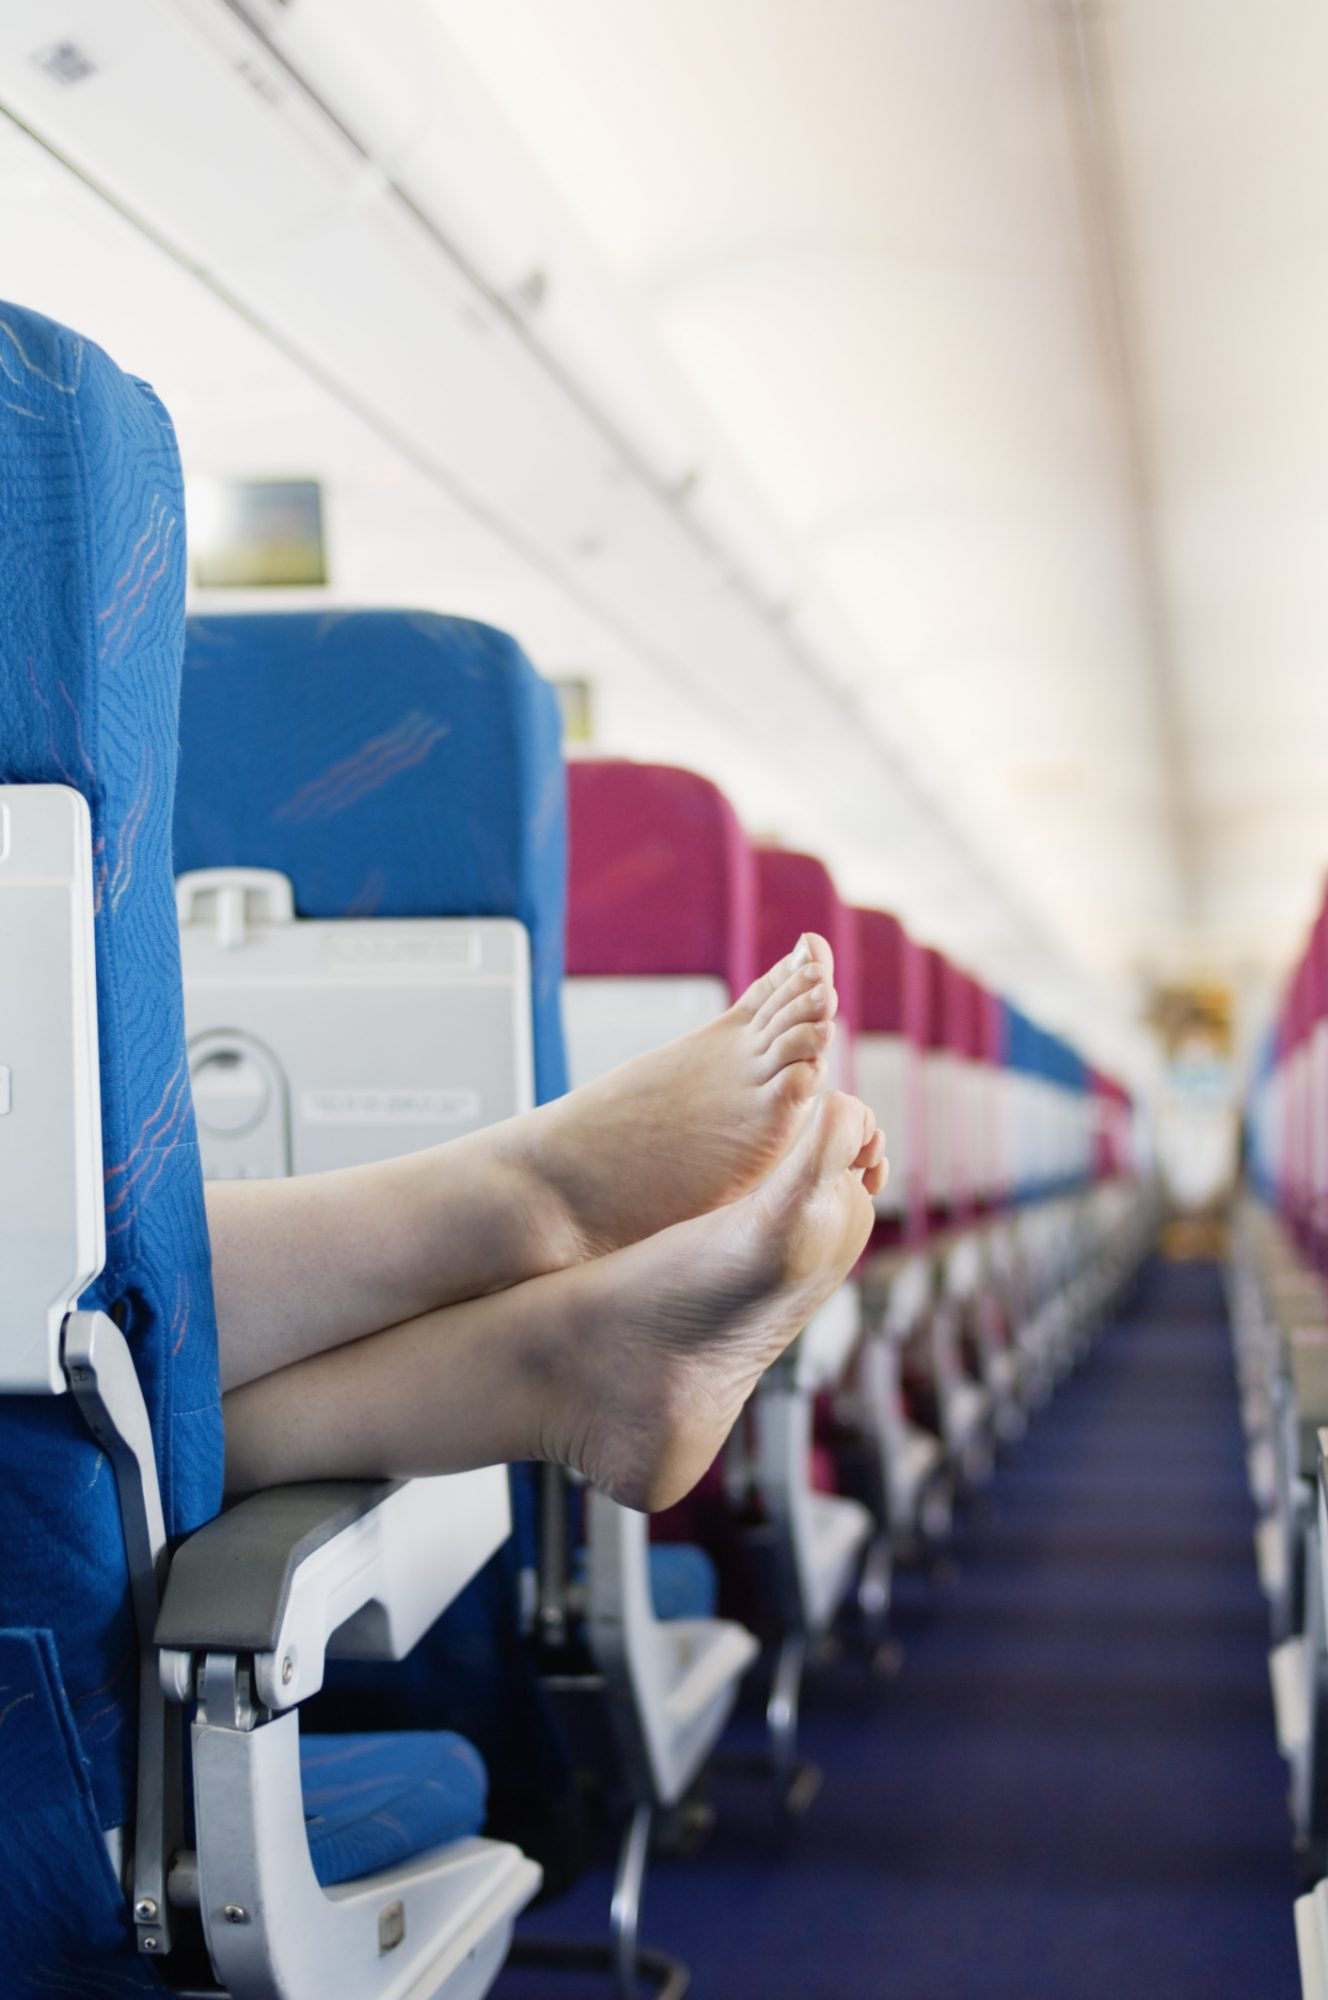 feet in airplane